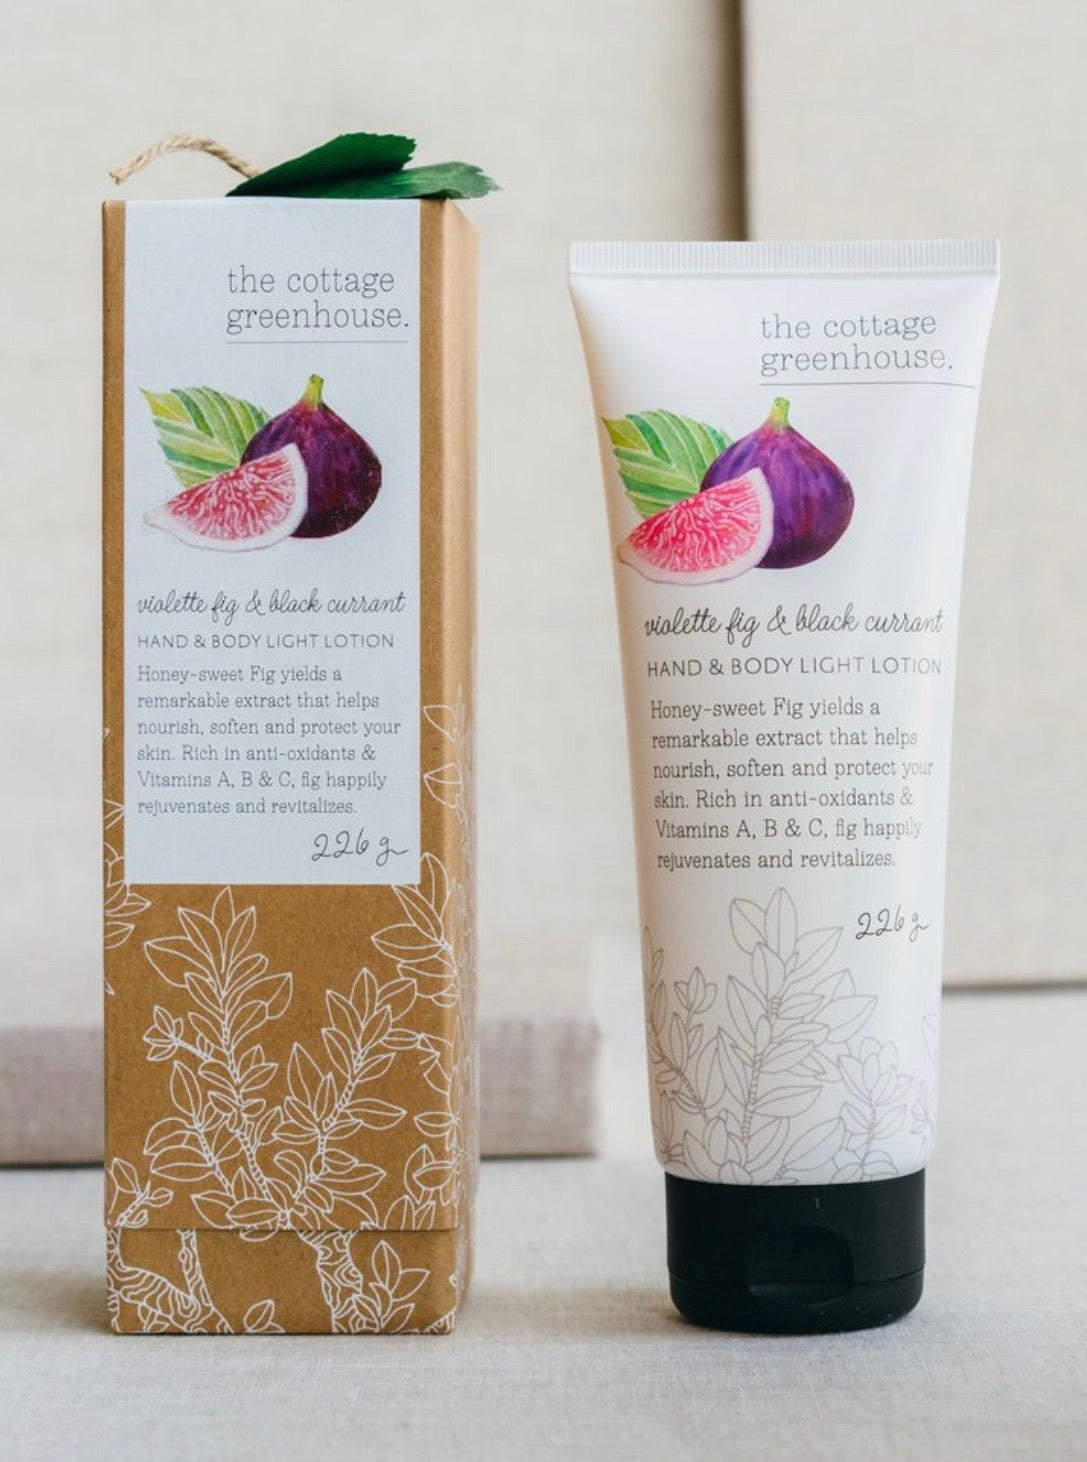 Violette Fig/Black Currant Lotion